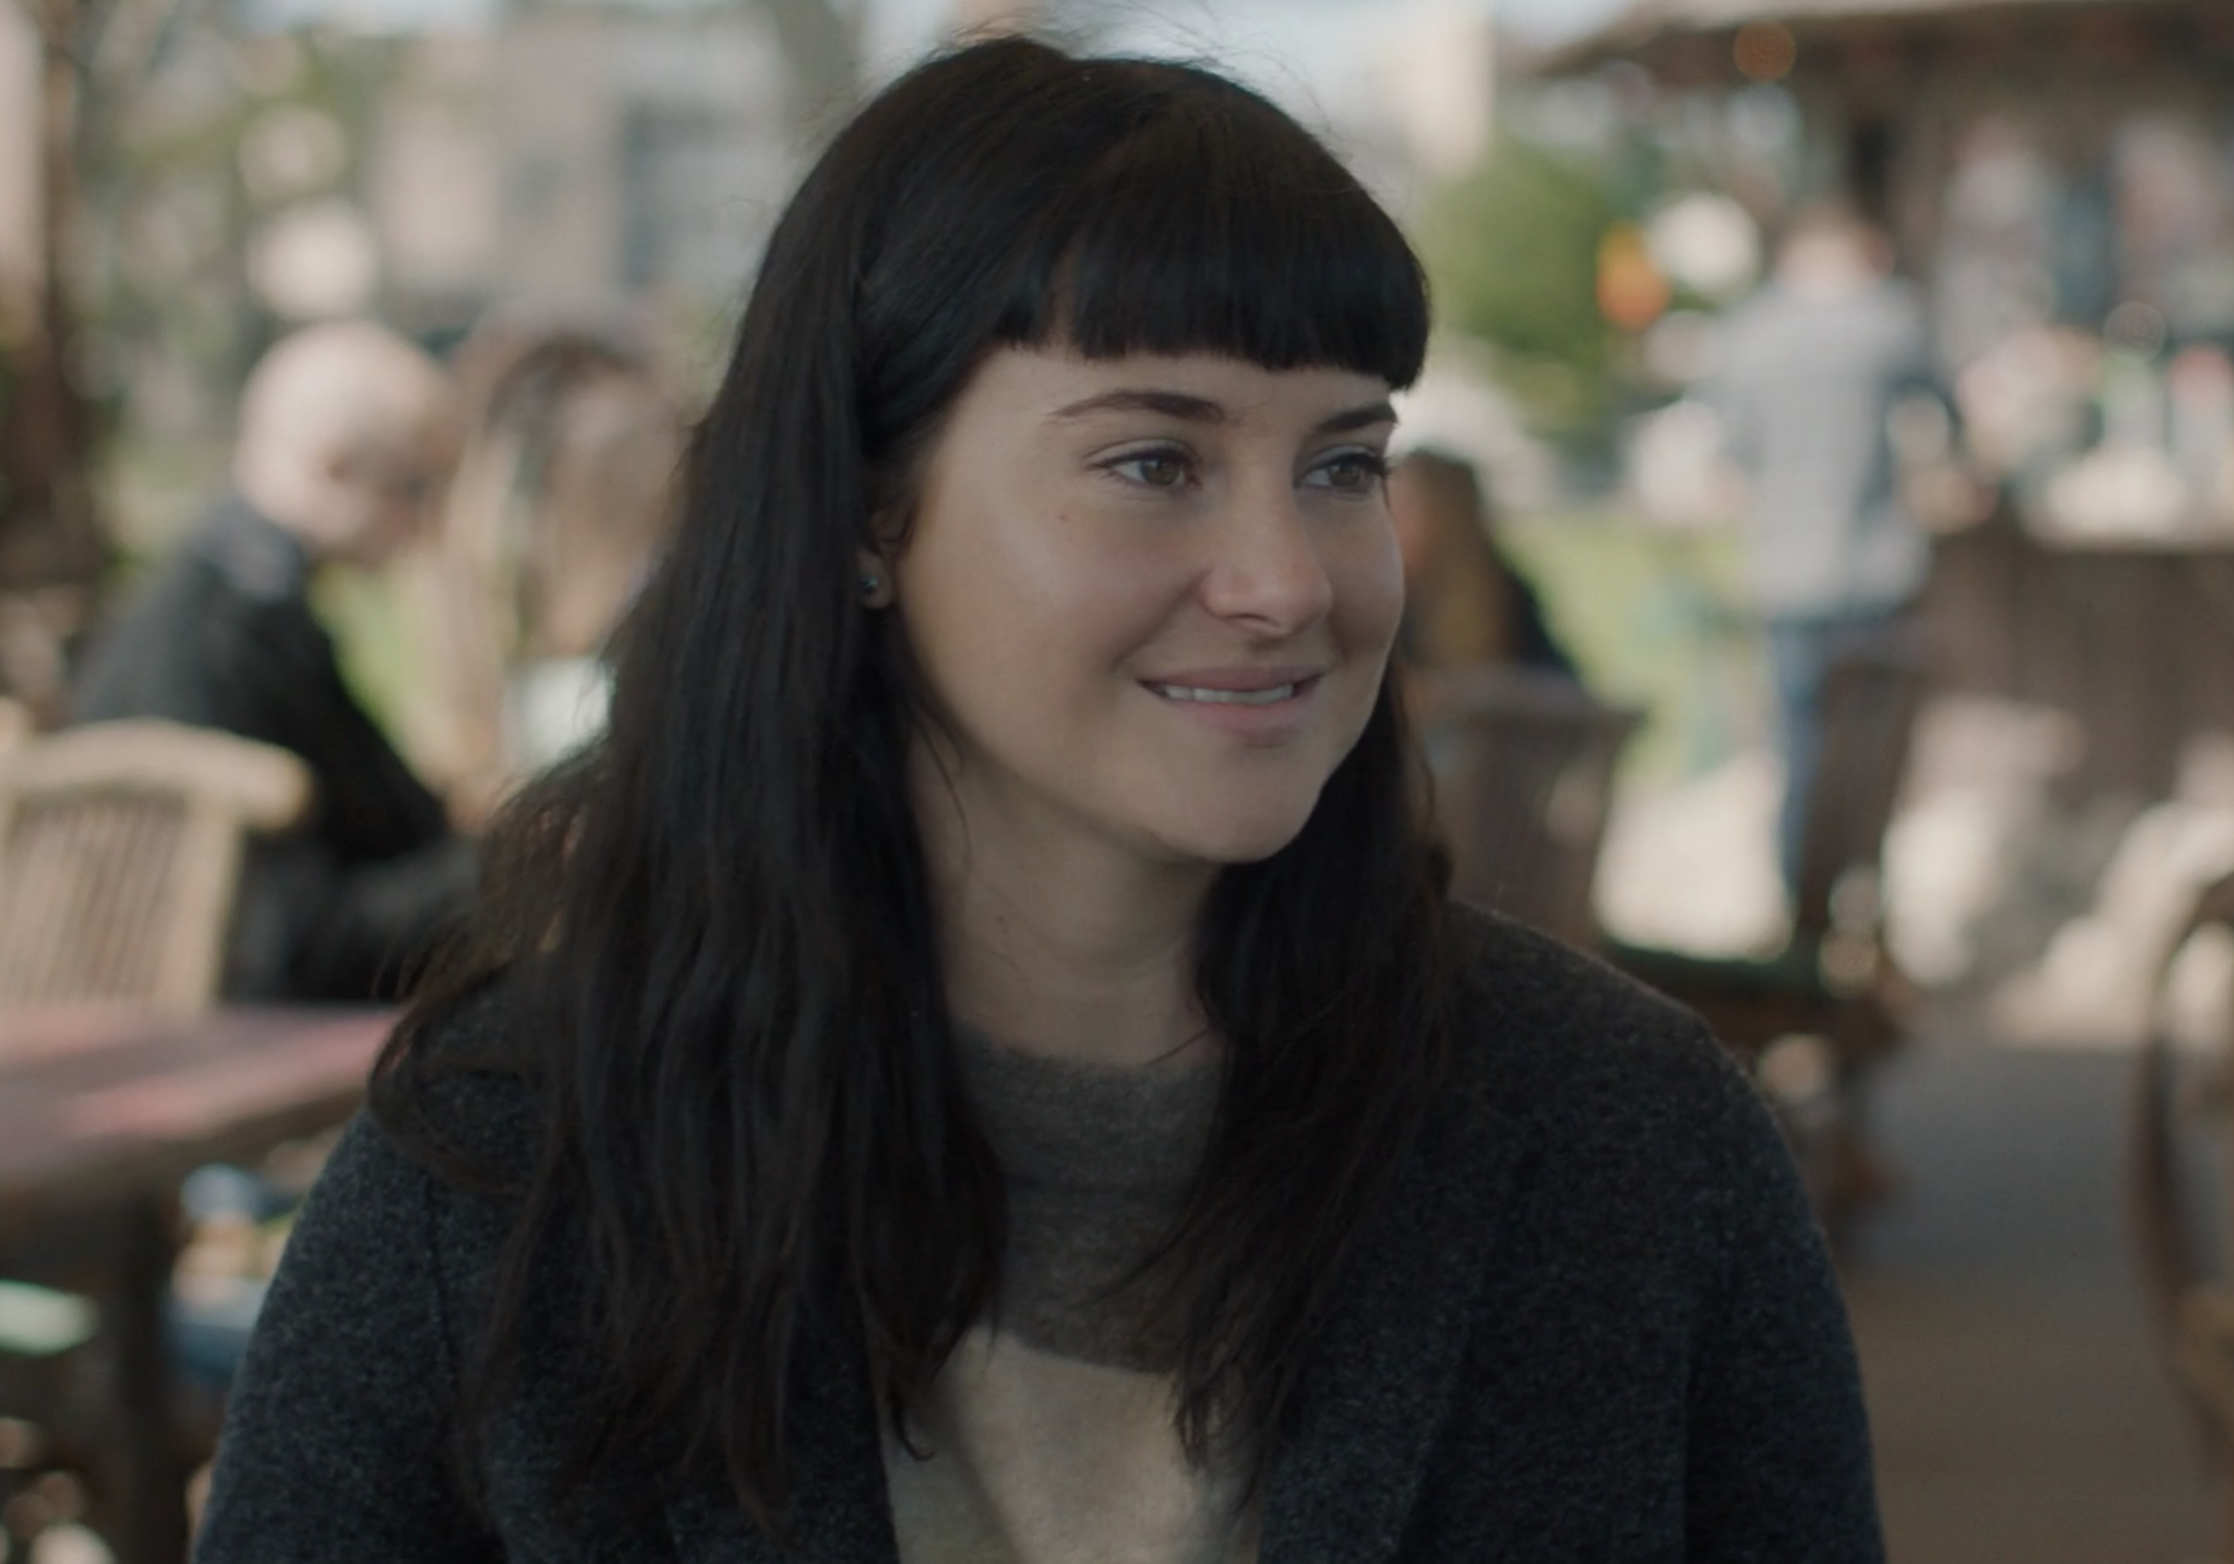 Shailene Woodley with very short bangs